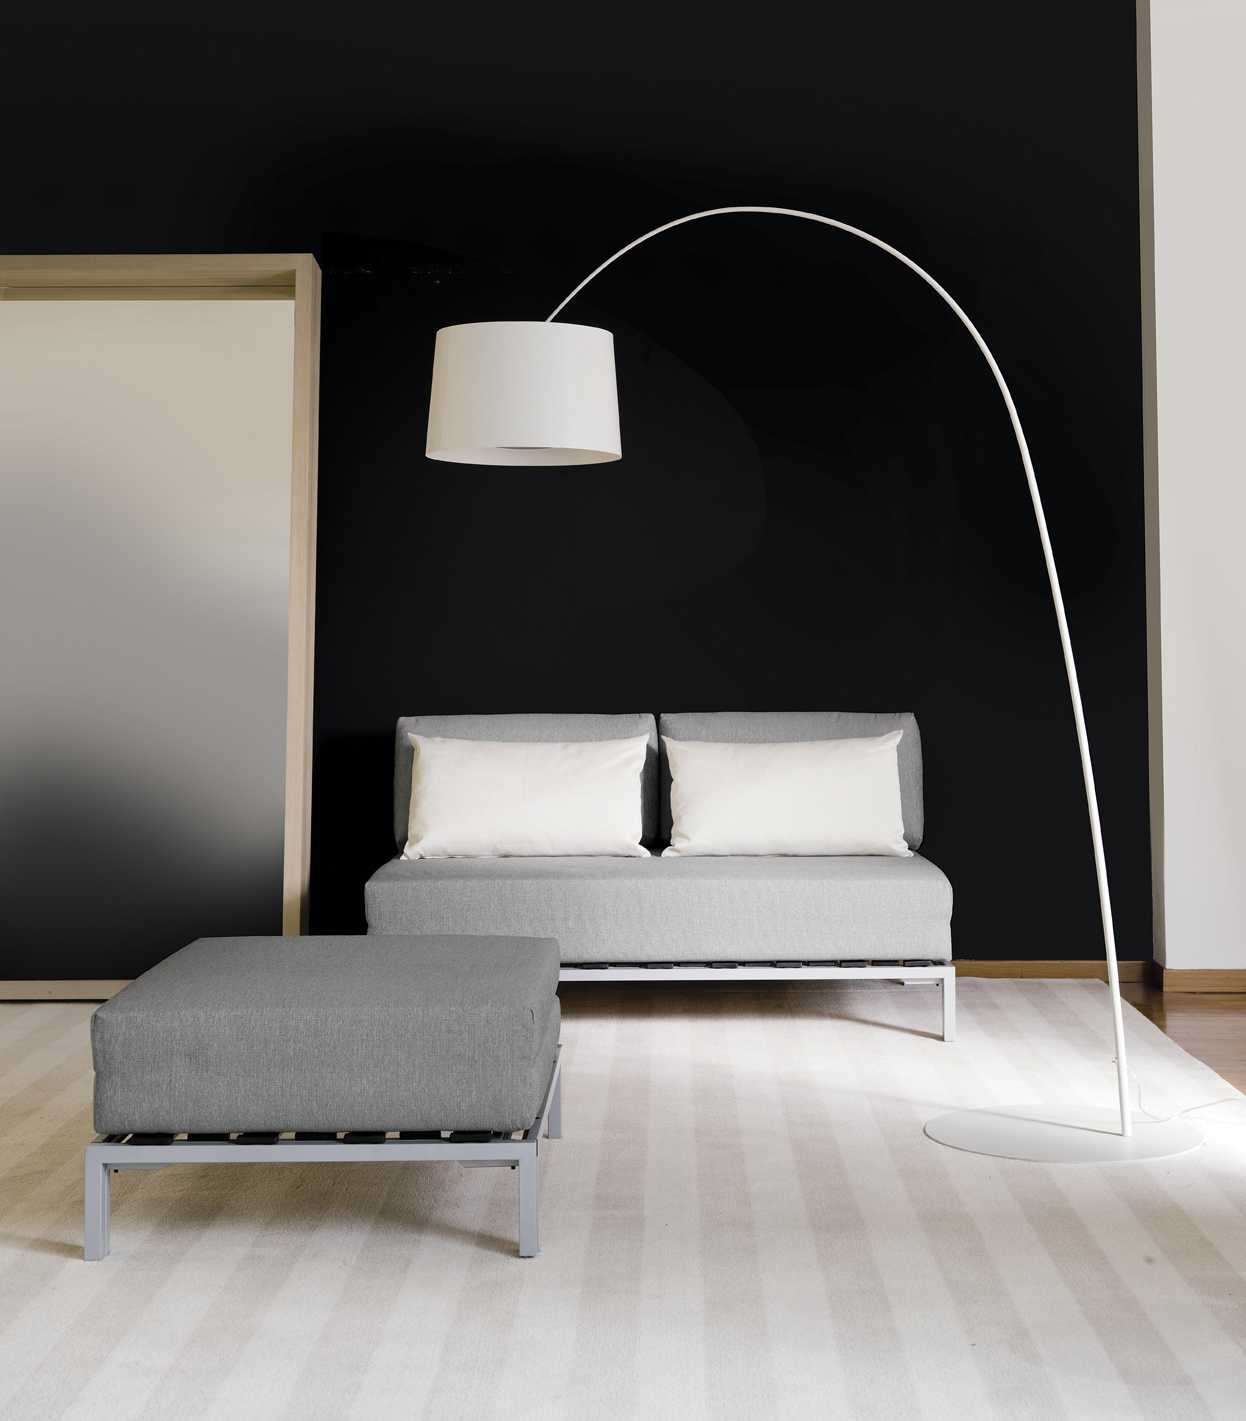 banquette lit willy design e garoni et s sallemi. Black Bedroom Furniture Sets. Home Design Ideas